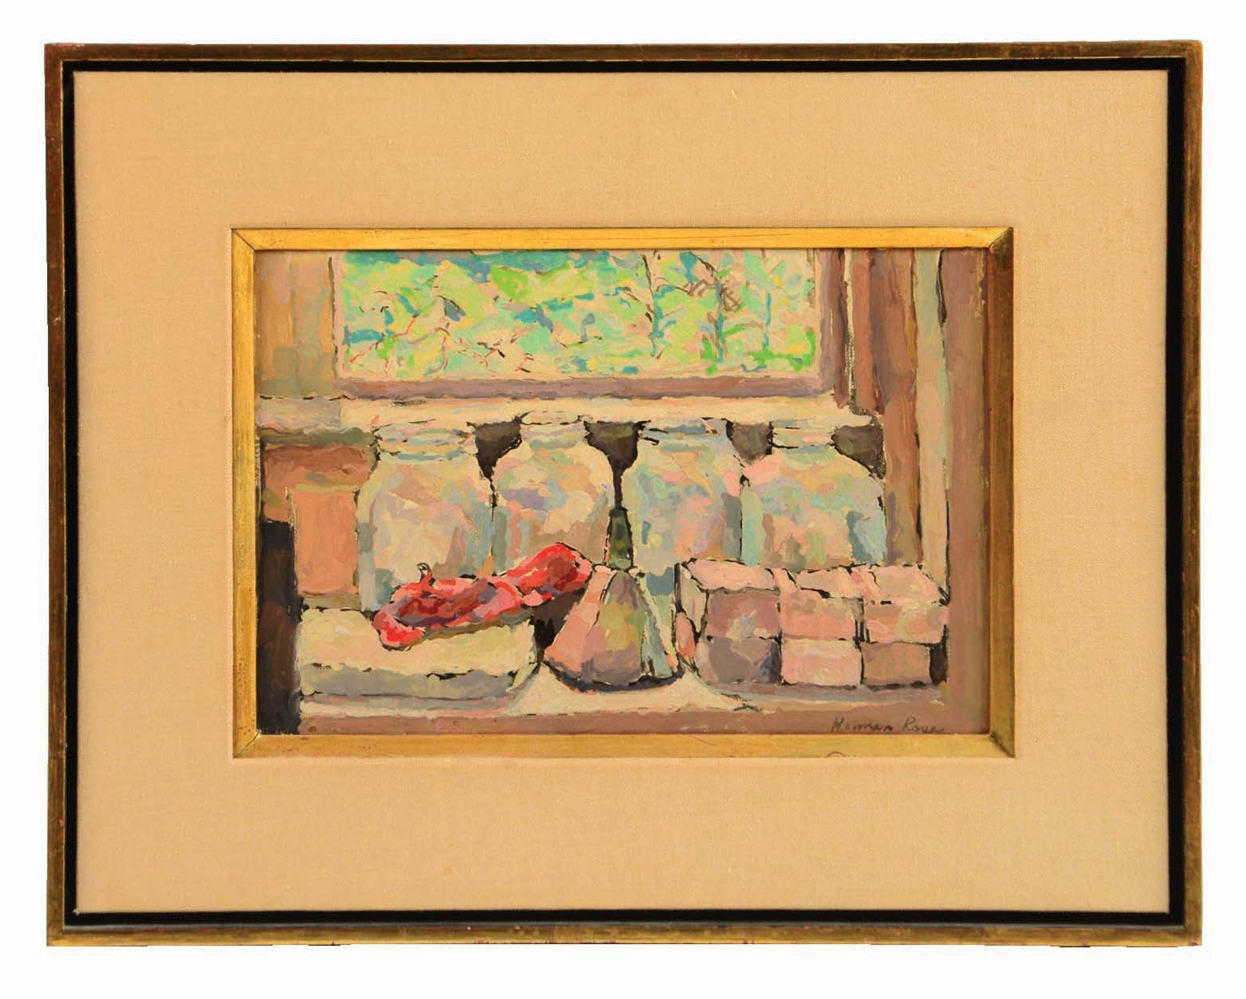 HERMAN ROSE (AMERICAN, 1909 - 2007) STILL LIFE JARS AND WINDOW.